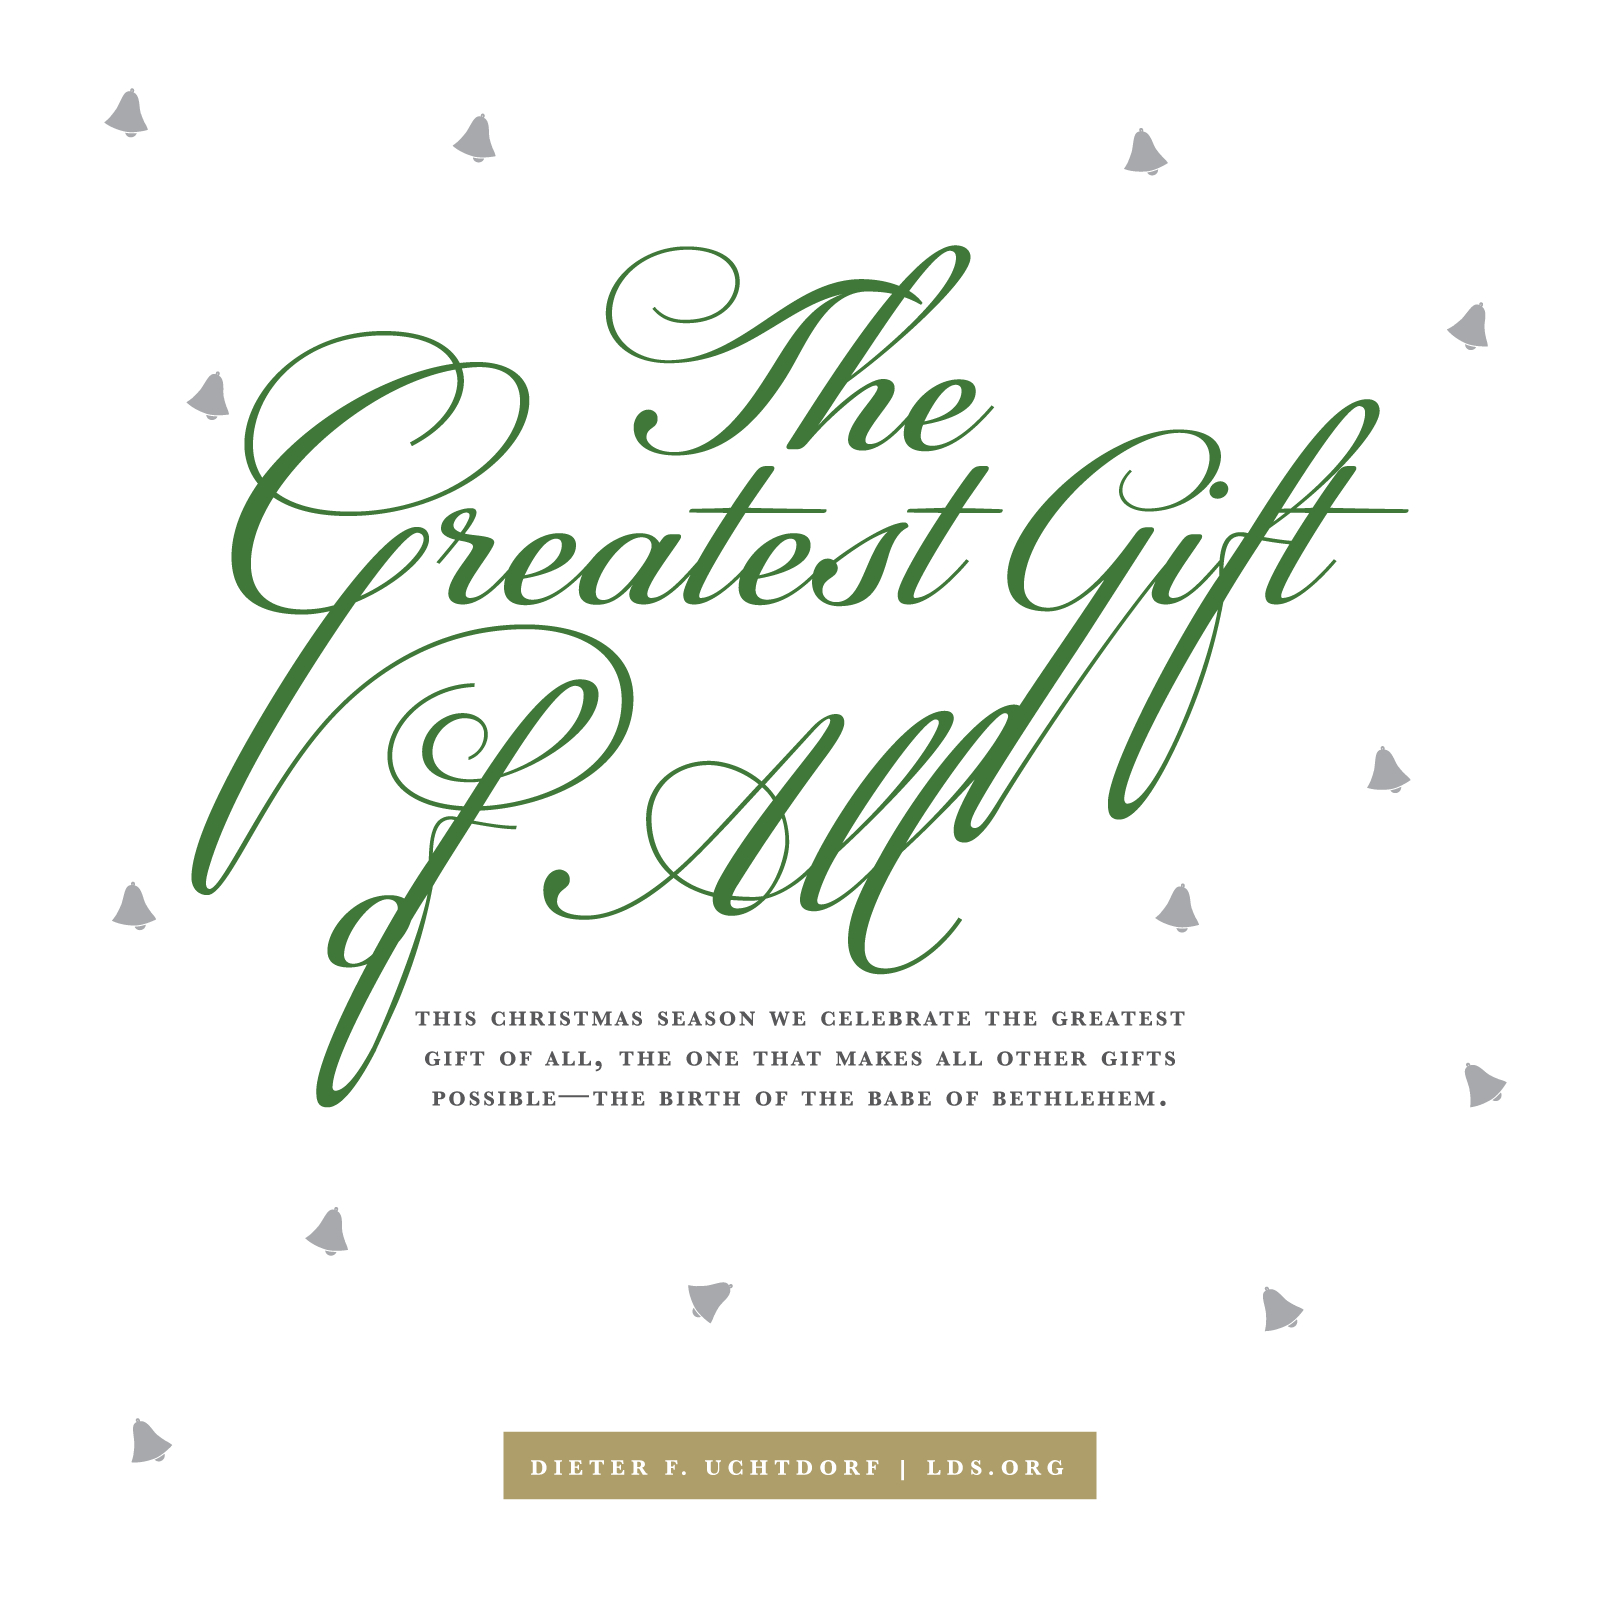 The gift of christmas devotional